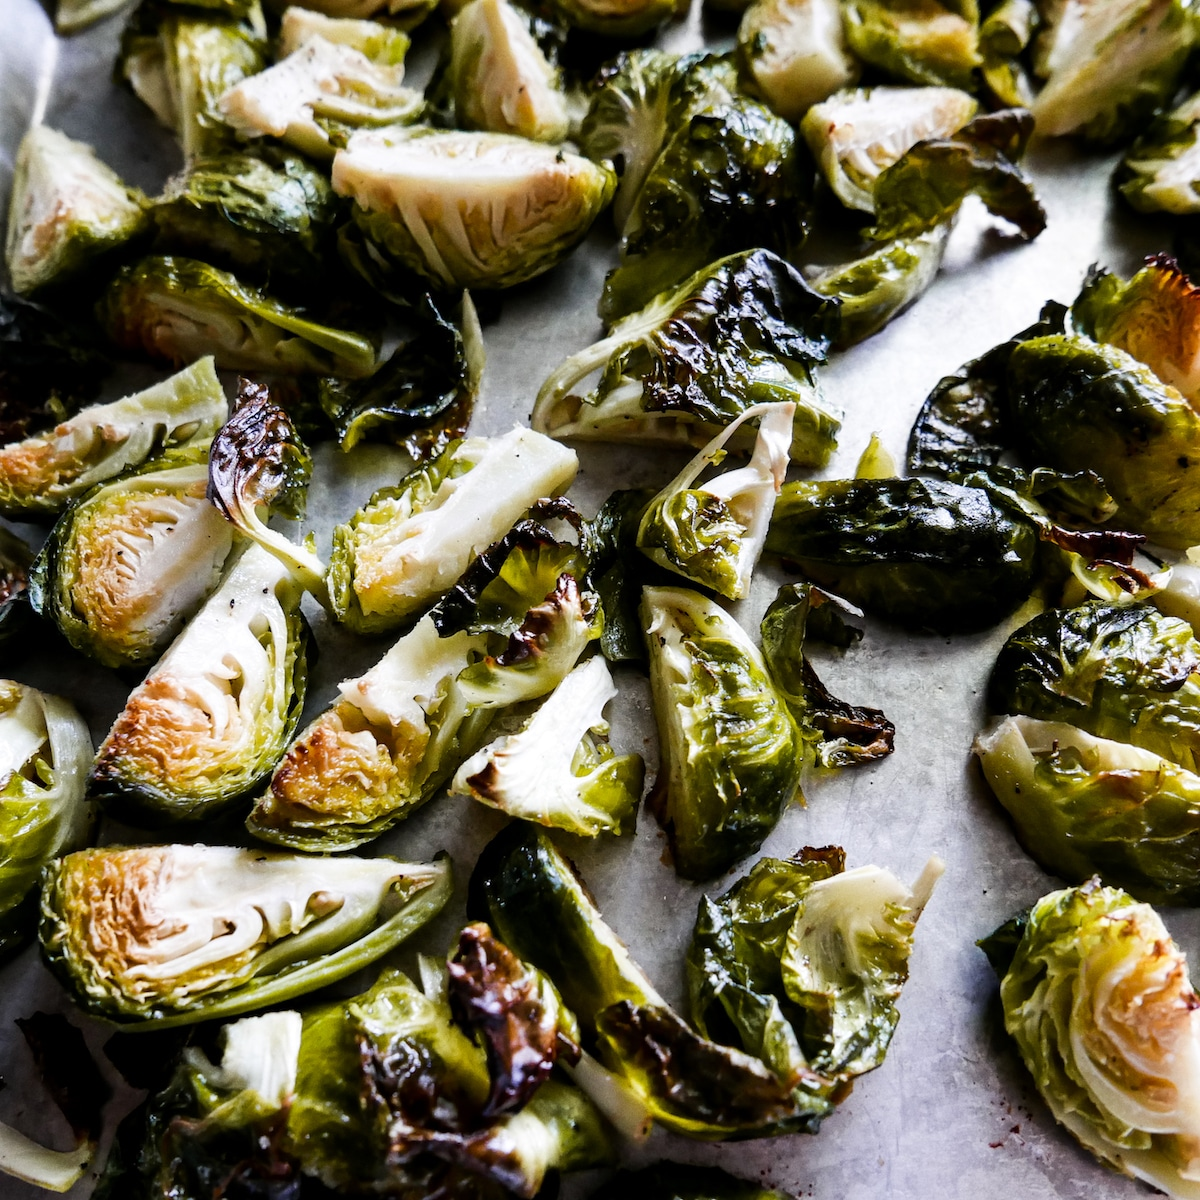 roasted brussels sprouts on a baking tray